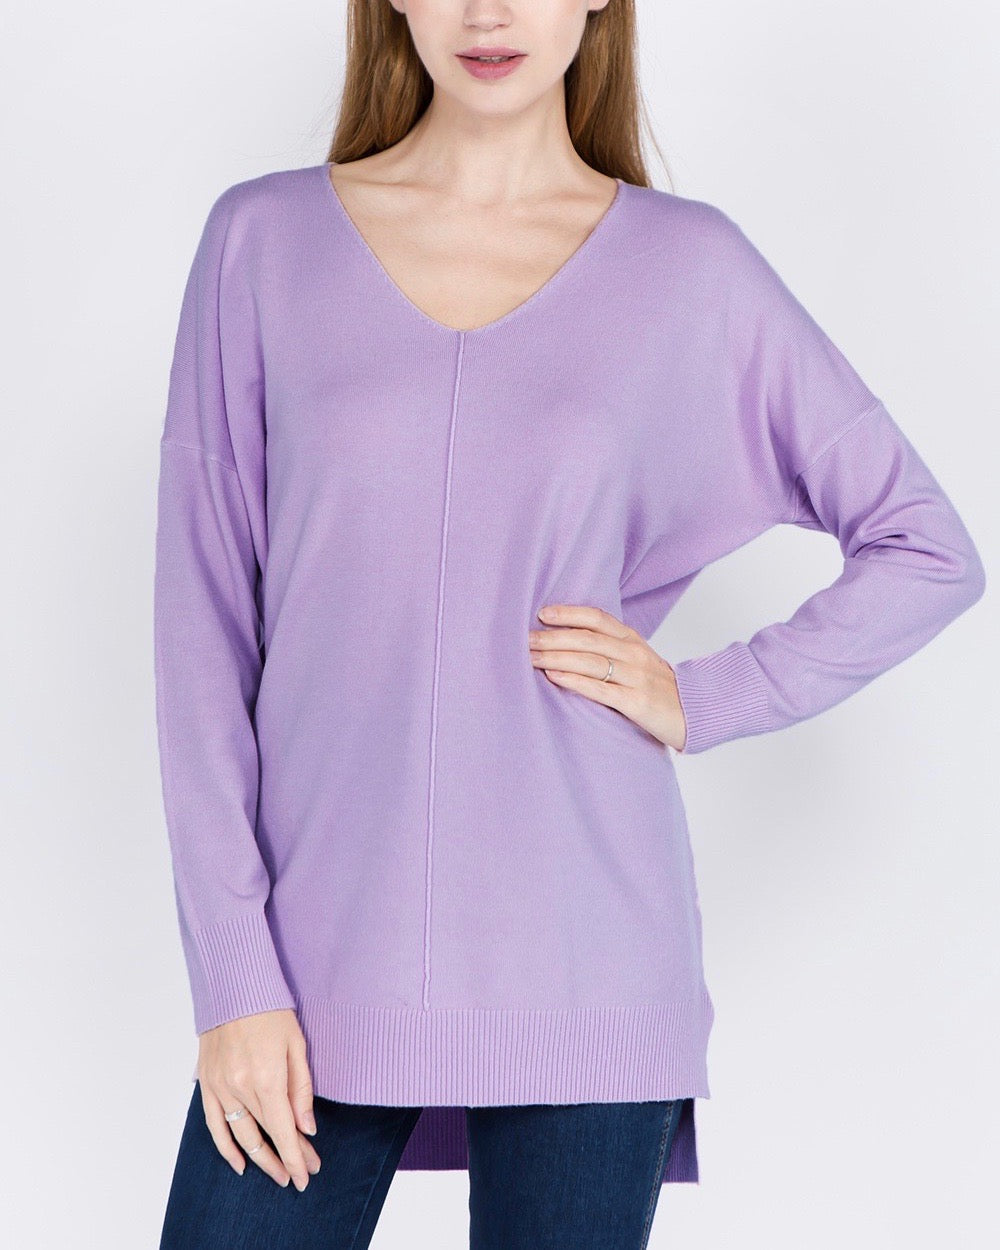 Dreamers - Front Seam V-Neck Sweater in More Colors